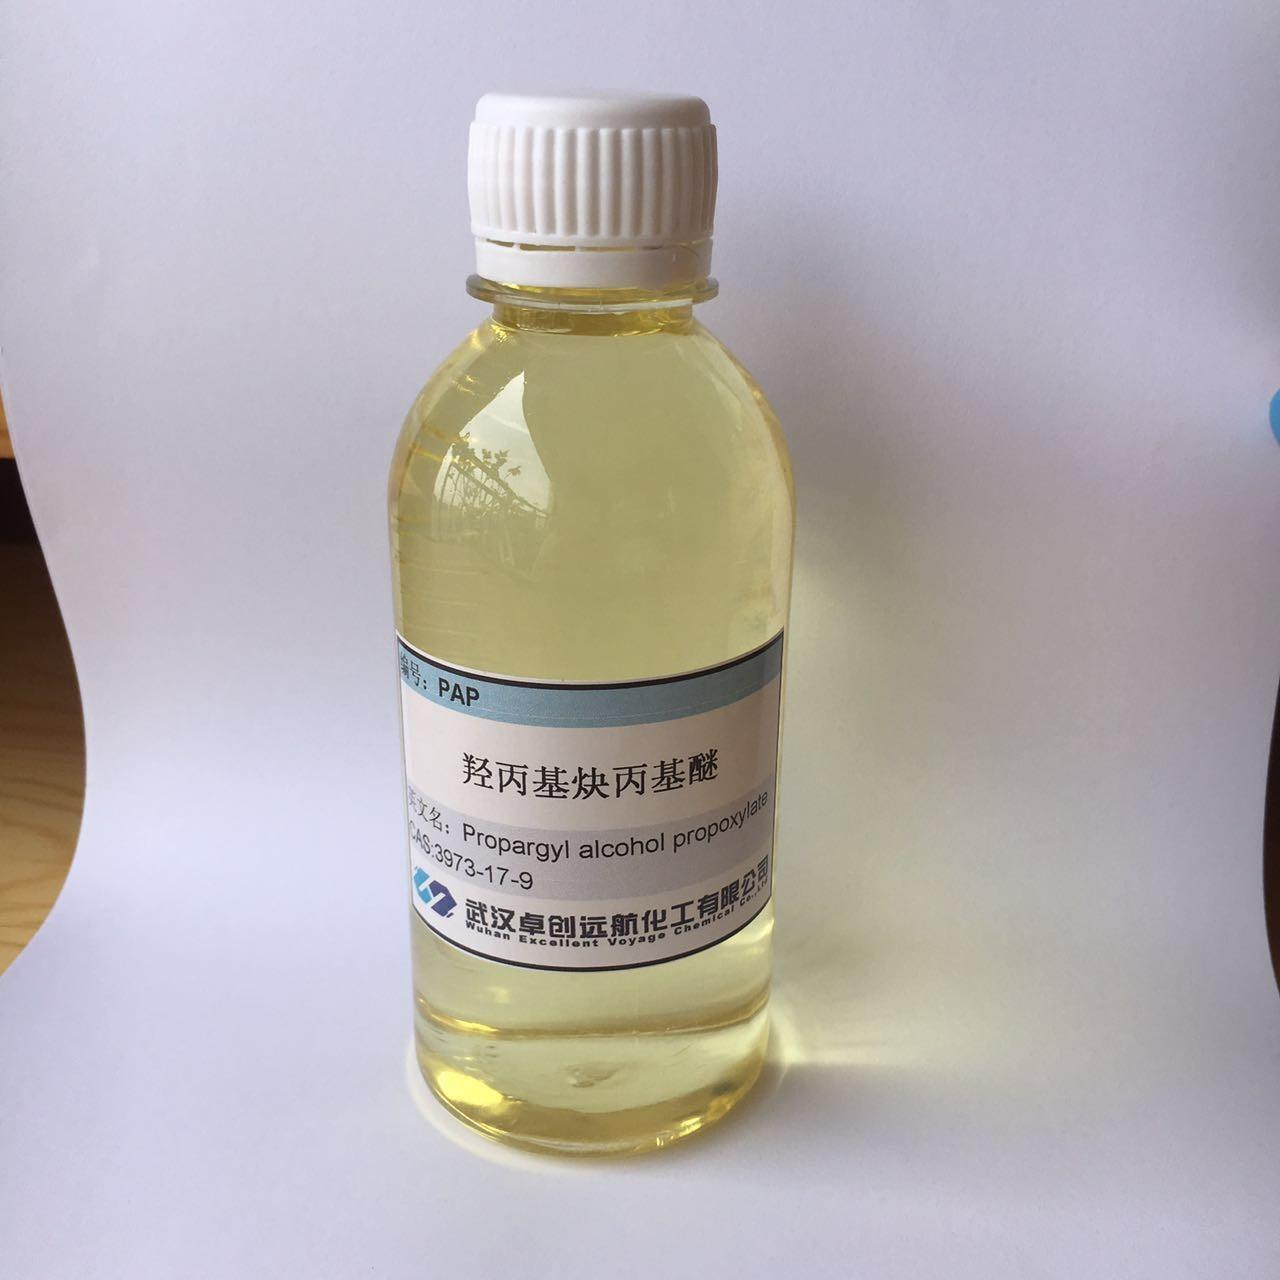 Buy cheap PAP(Propargyl alcohol propoxylate) 3973-17-9 Leveling agent , brightening agent from wholesalers